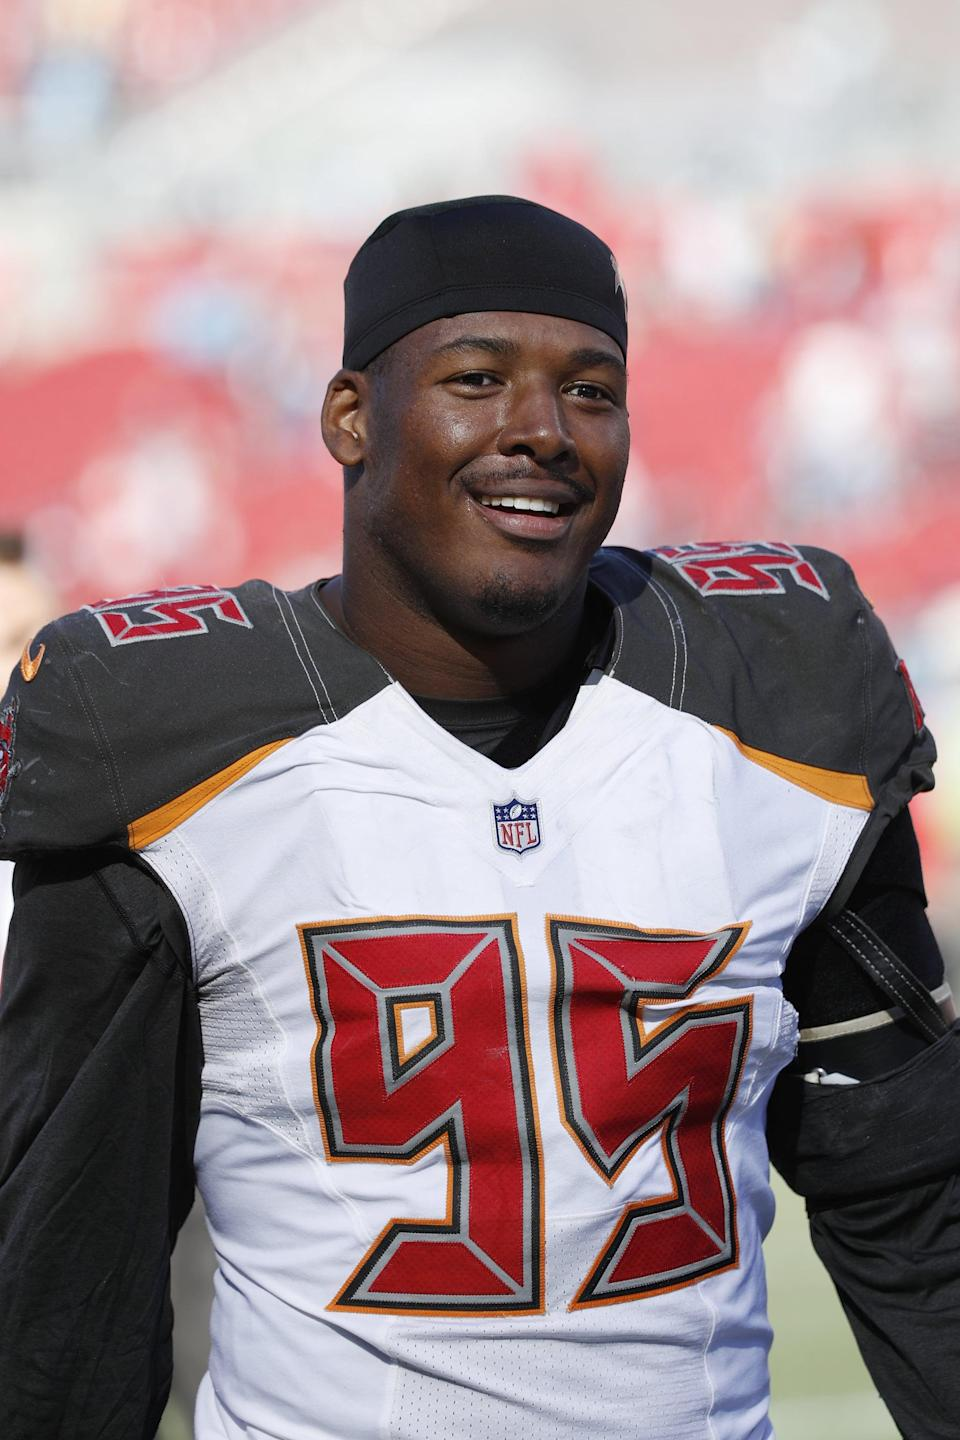 """<p>Football player Ryan Russell, who played for the Tampa Bay Buccanneers and the Dallas Cowboys, became the first openly bisexual NFL player when he came out in 2019. </p> <p>""""In nobody's worlds should being careful mean <a href=""""https://www.espn.com/nfl/story/_/id/27484719/no-distractions-nfl-veteran-opens-sexuality"""" class=""""link rapid-noclick-resp"""" rel=""""nofollow noopener"""" target=""""_blank"""" data-ylk=""""slk:not being yourself"""">not being yourself</a>,"""" Russell wrote in an essay for ESPN. """"The career you choose shouldn't dictate the parts of yourself that you embrace."""" He went on to address the NFL's potential for embracing diverse sexualities, writing, """"I can tell you from experience that as long as a teammate contributes to success on the field and in the locker room, NFL players aren't concerned about who their defensive linemen date."""" With all the problems facing the world and the NFL, Russell said, """"I can say with confidence that LGBTQ players having the comfort to be themselves, date who they want, share parts of their life with friends and teammates will not rank among those issues.""""</p>"""